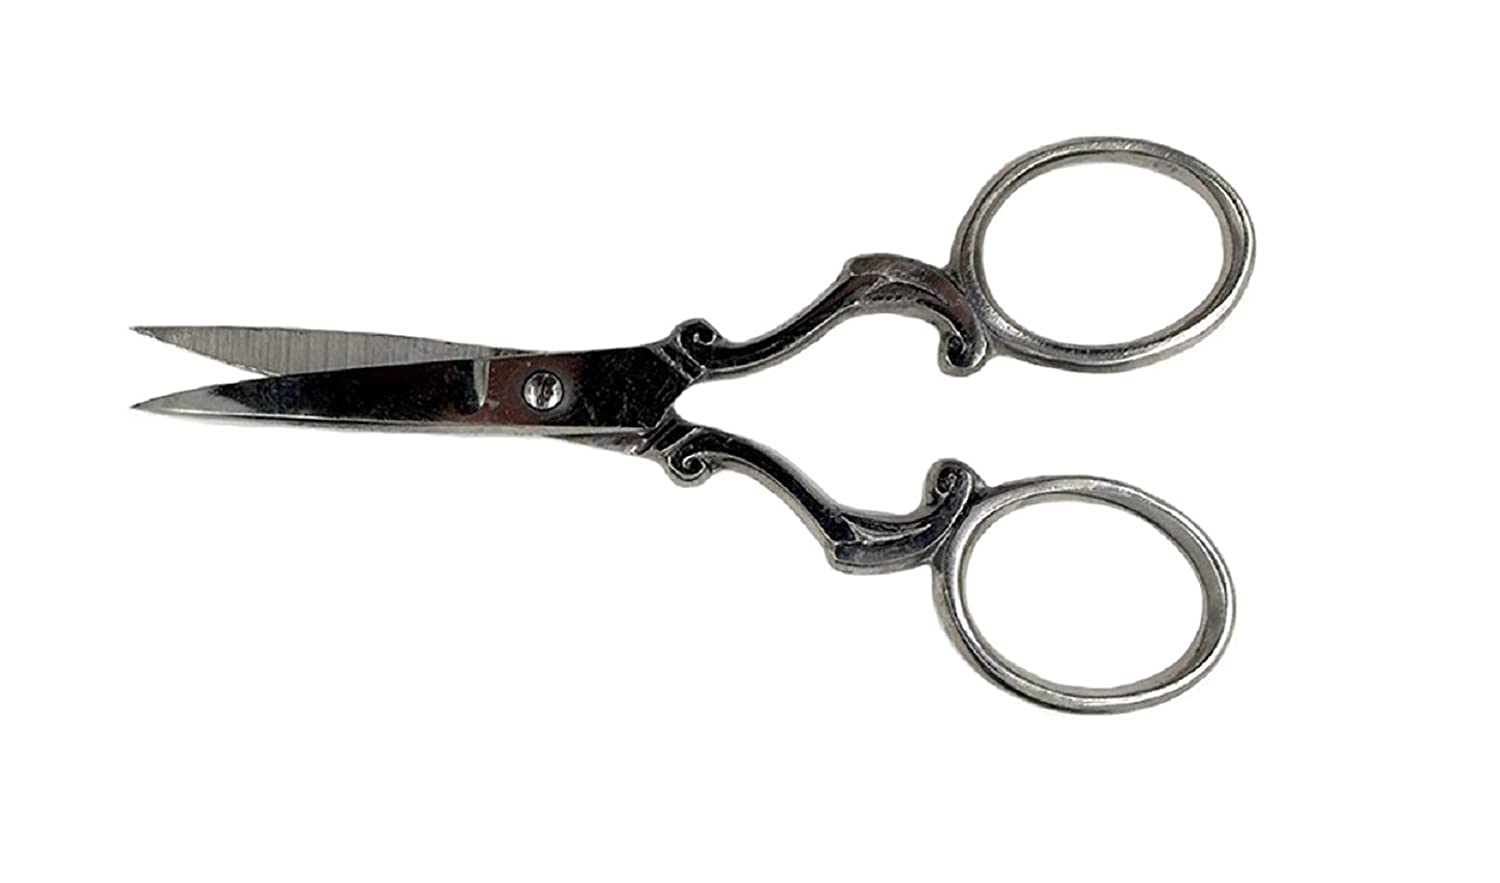 Badass Beard Care Beard & Mustache Stainless Steel Trimming Scissors For Men - Extremely Sharp and Durable (Silver)